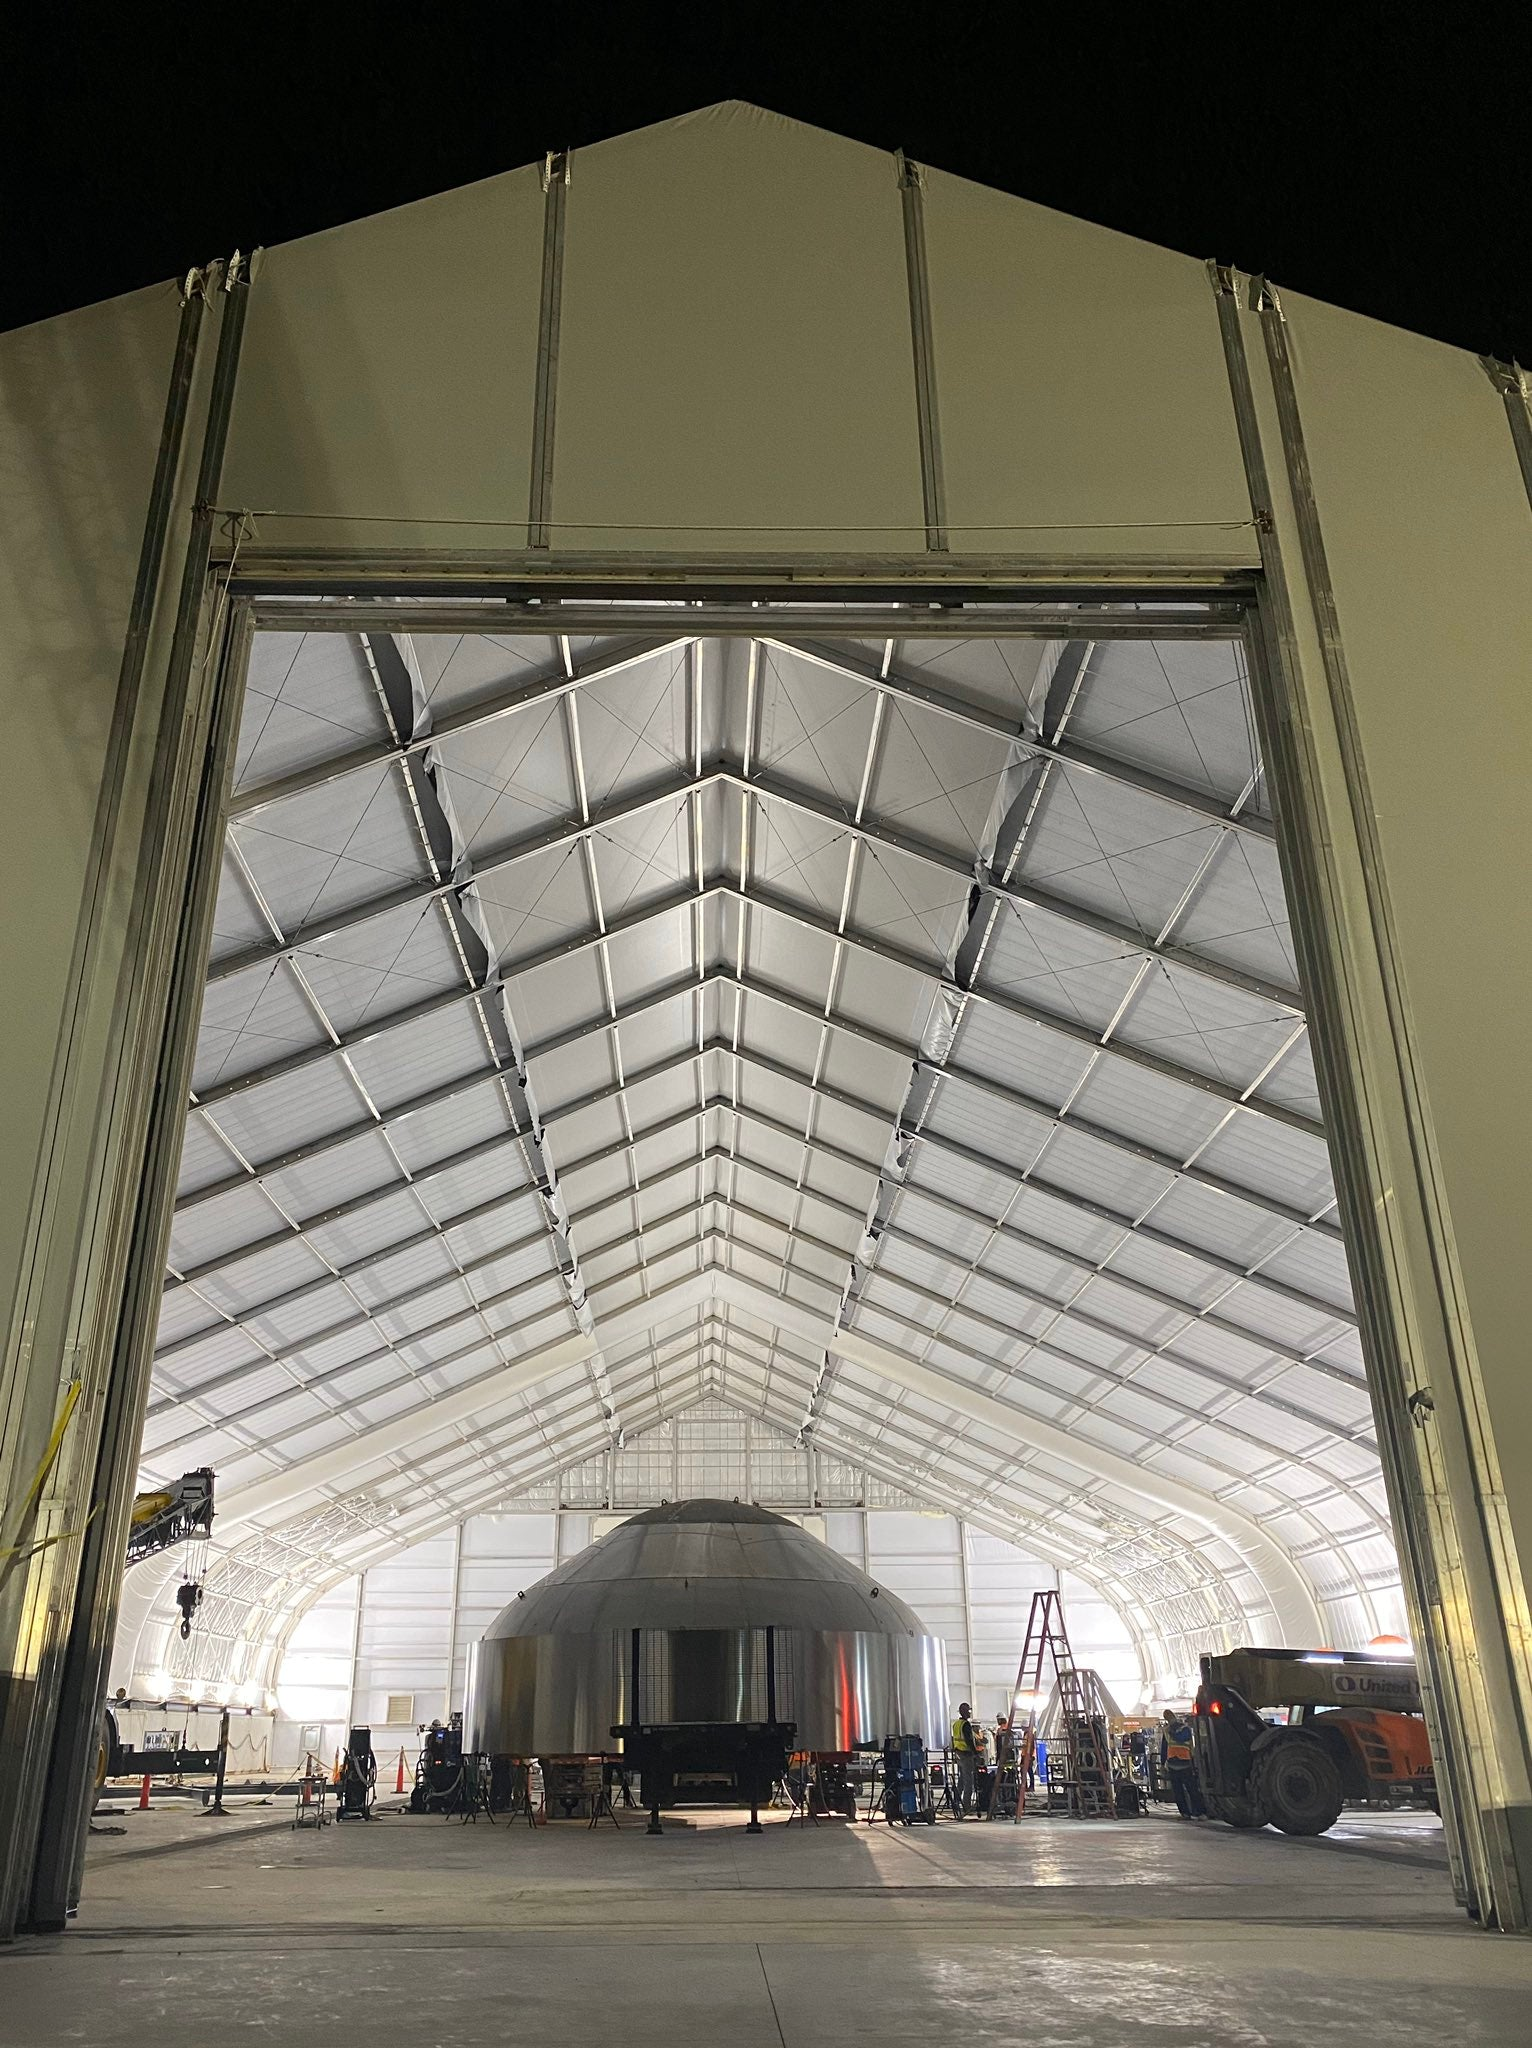 Elon Musk shares photo of SpaceX's new Starship assembly building in Boca Chica Texas